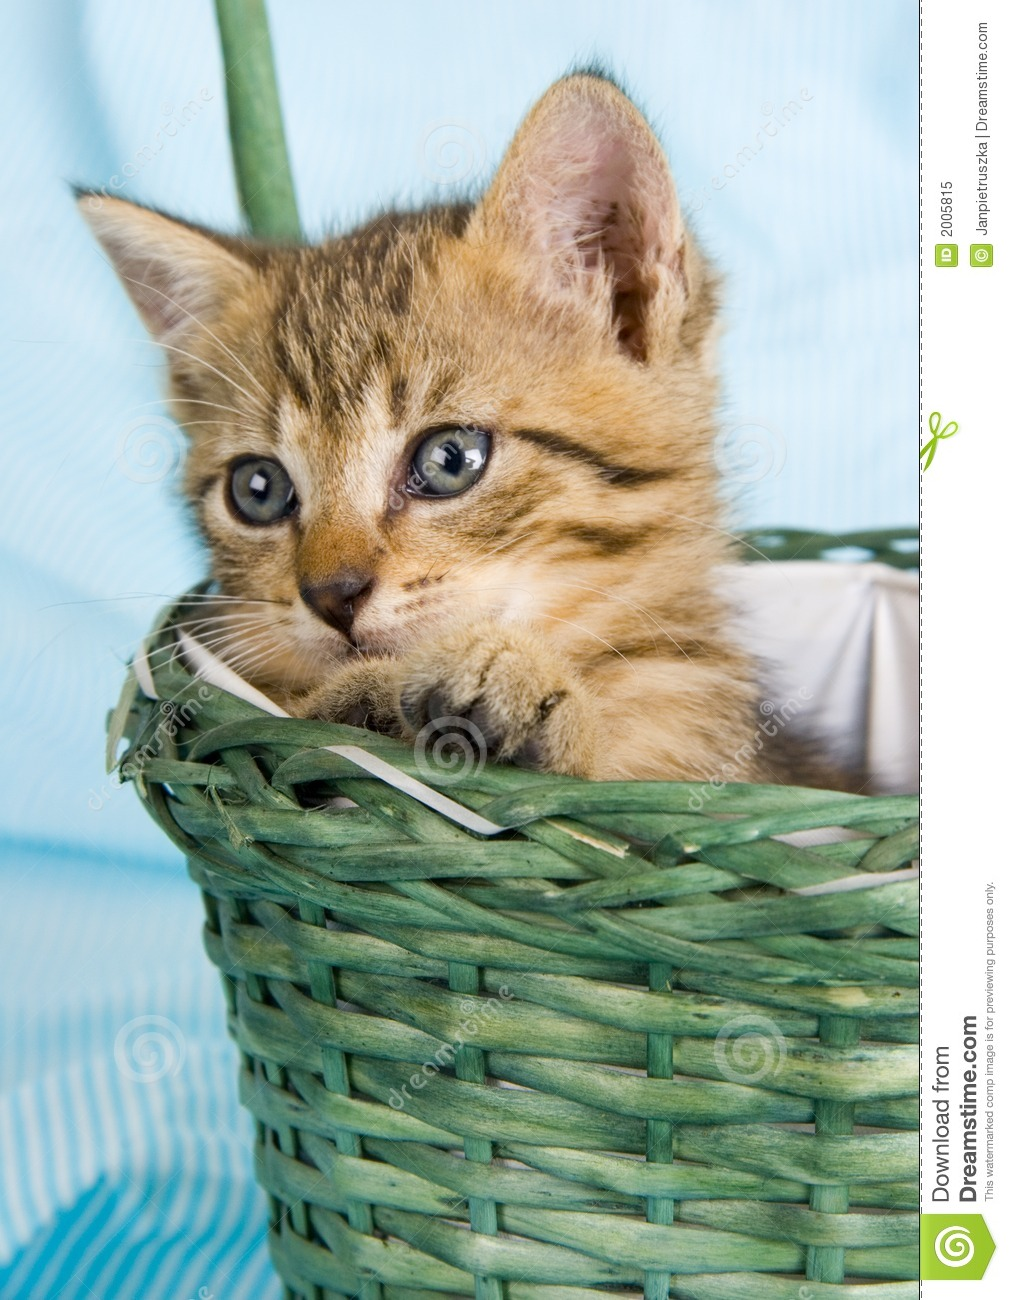 Cat In The Basket Stock Image. Image Of Mammals, Claws